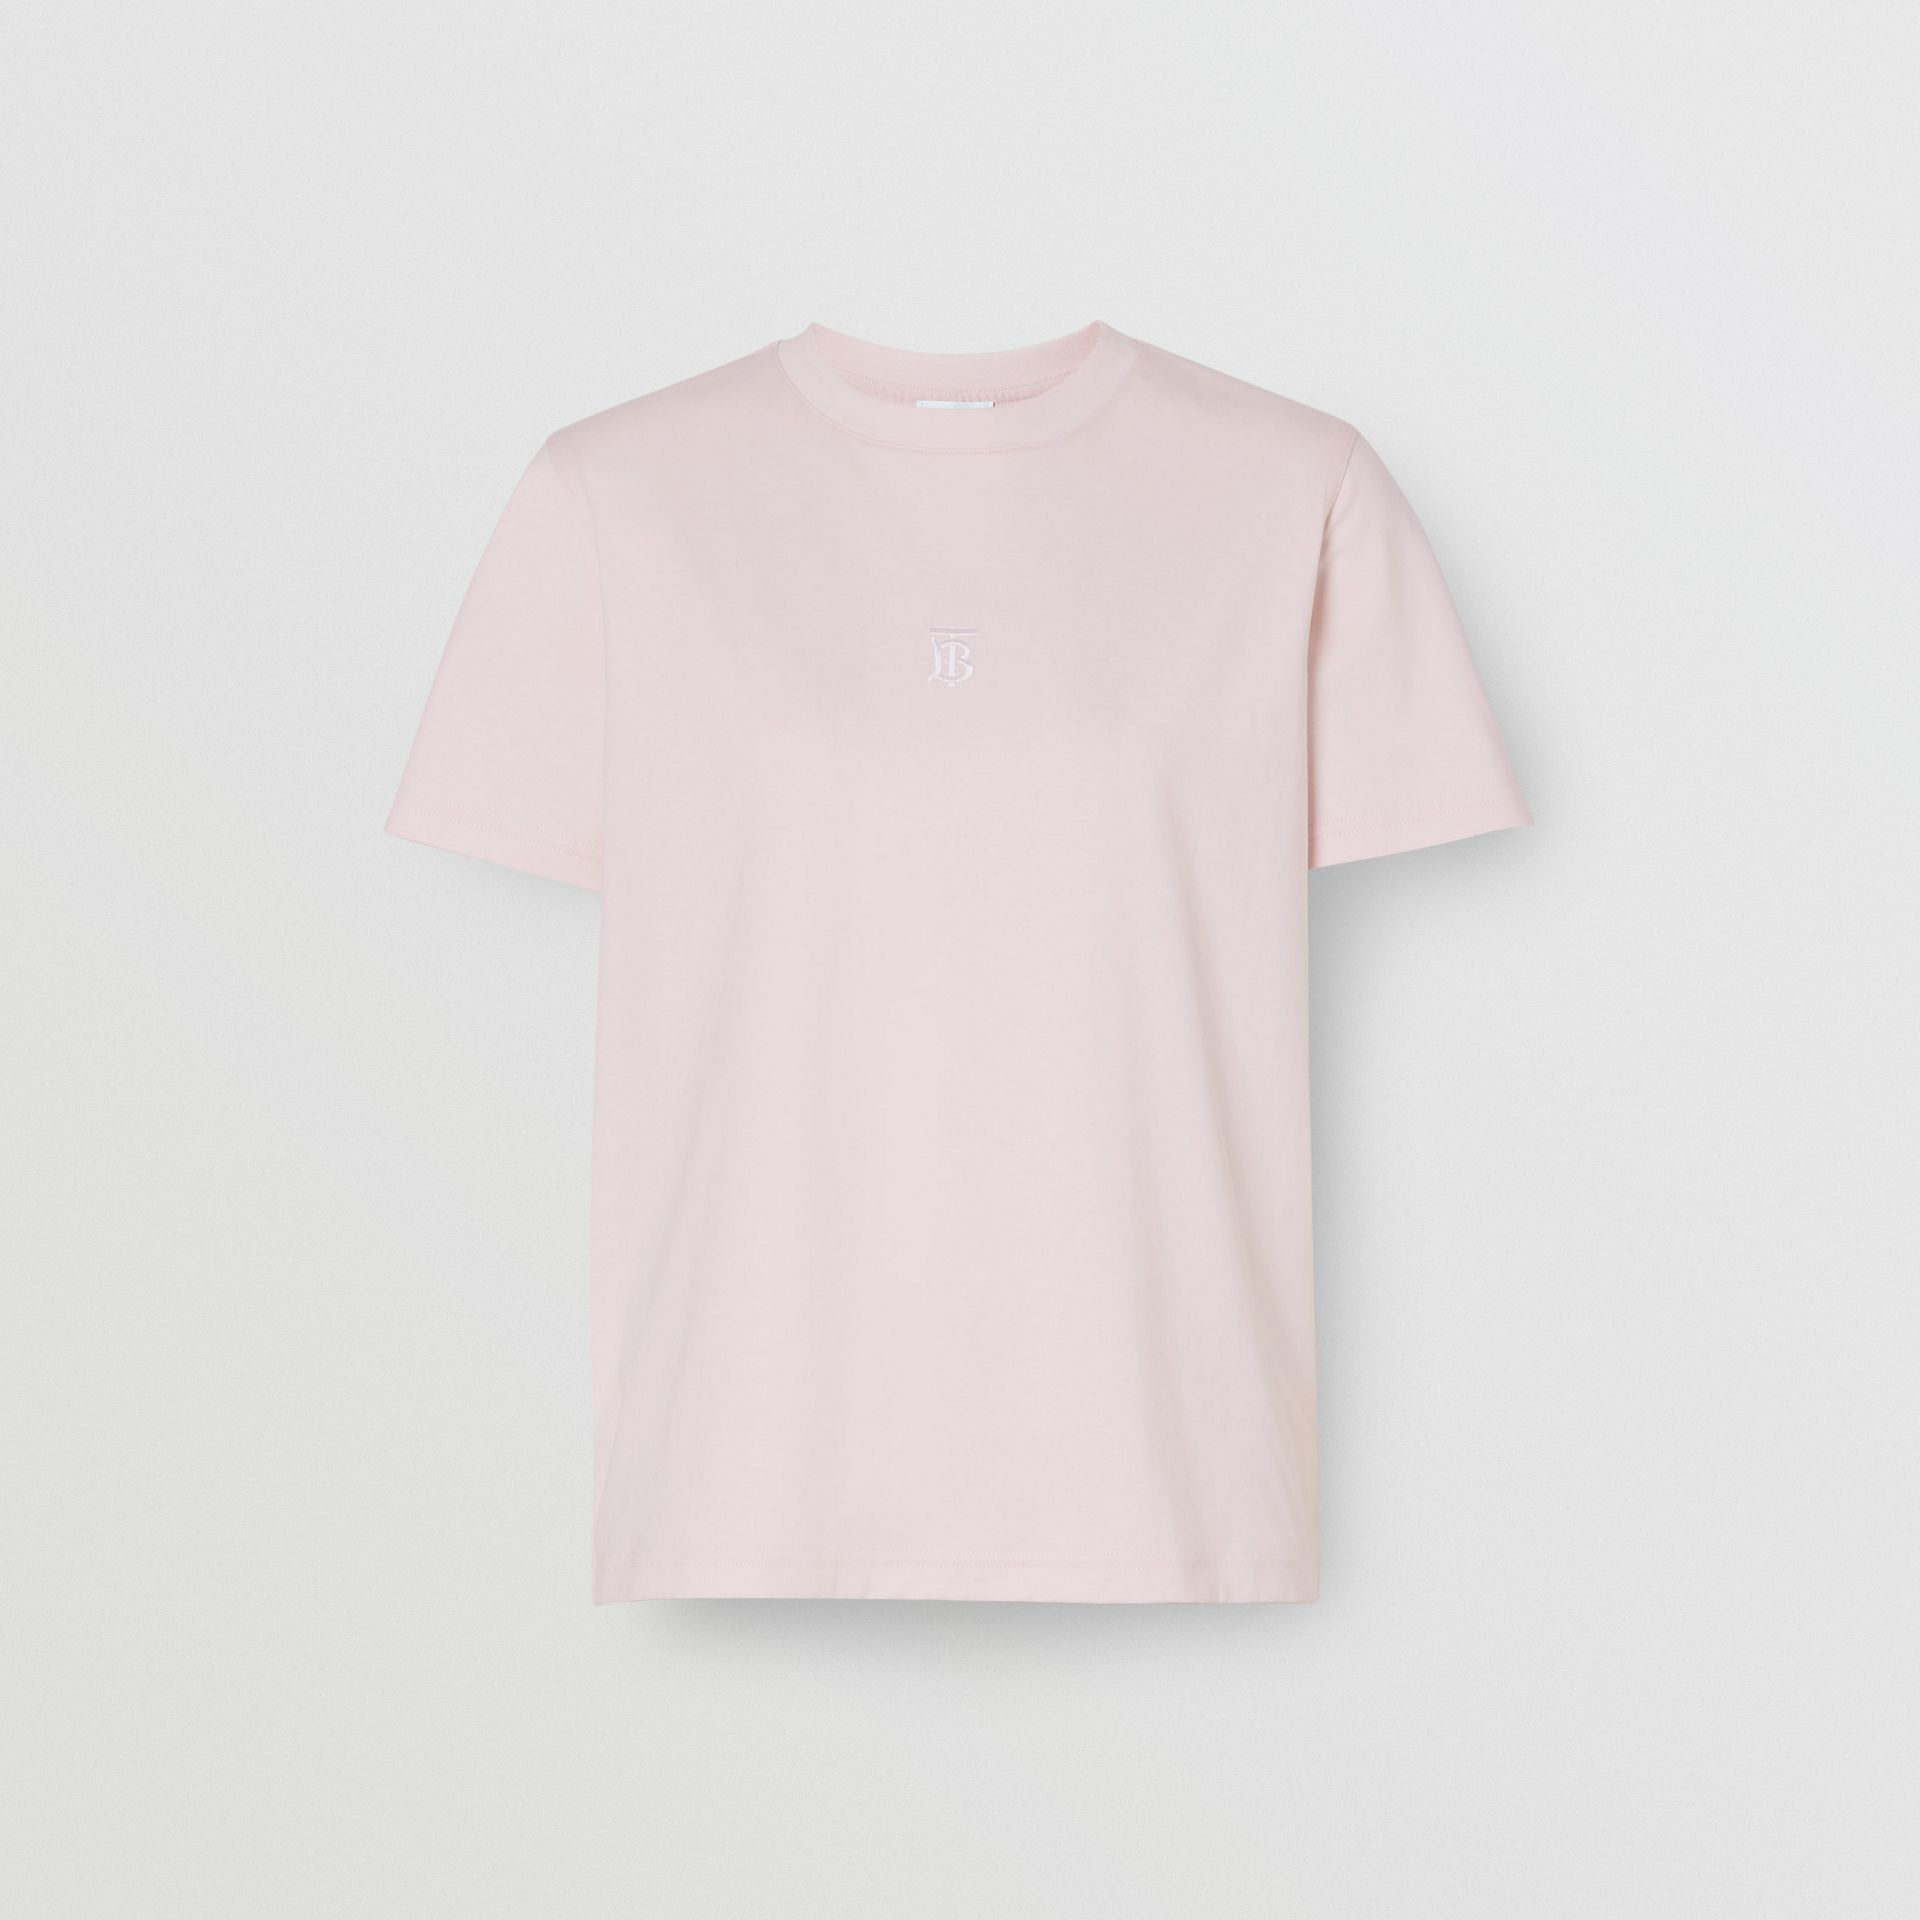 Monogram Motif Cotton T-shirt in Alabaster Pink - Women | Burberry Australia - gallery image 3